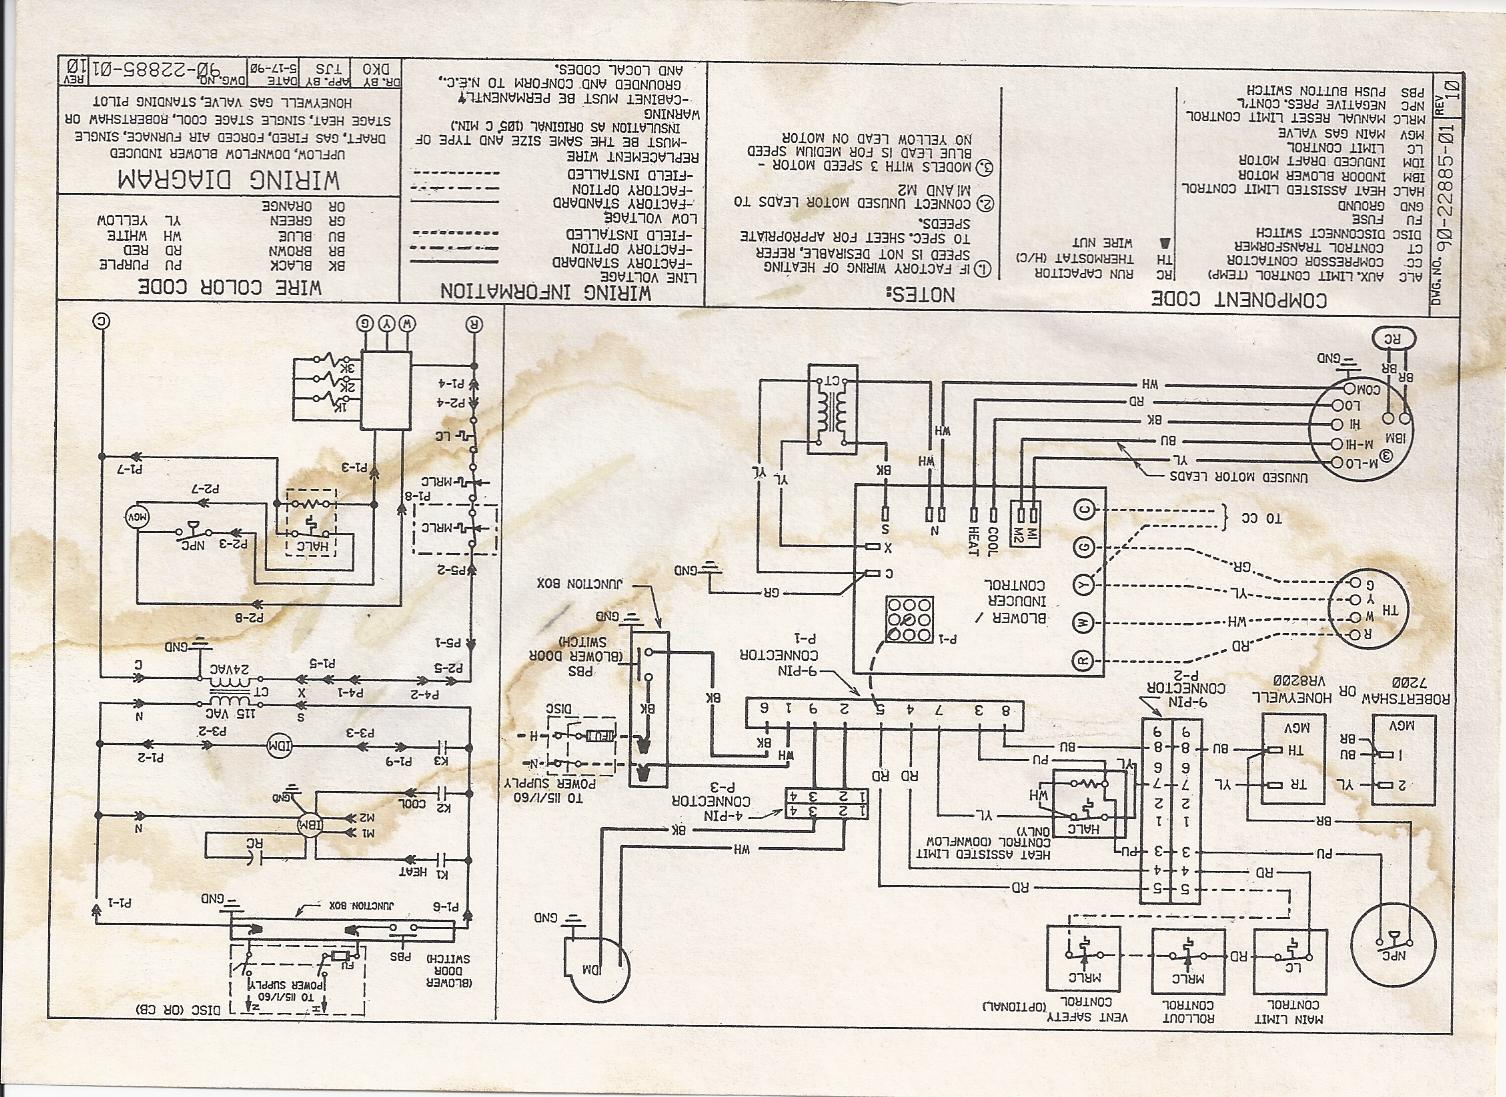 hvac wiring diagram for 2004 honda accord lx my ruud indoor blower runs all the time, i have been told i need to replace the honeywell board ... powerpoint hvac wiring diagram #14